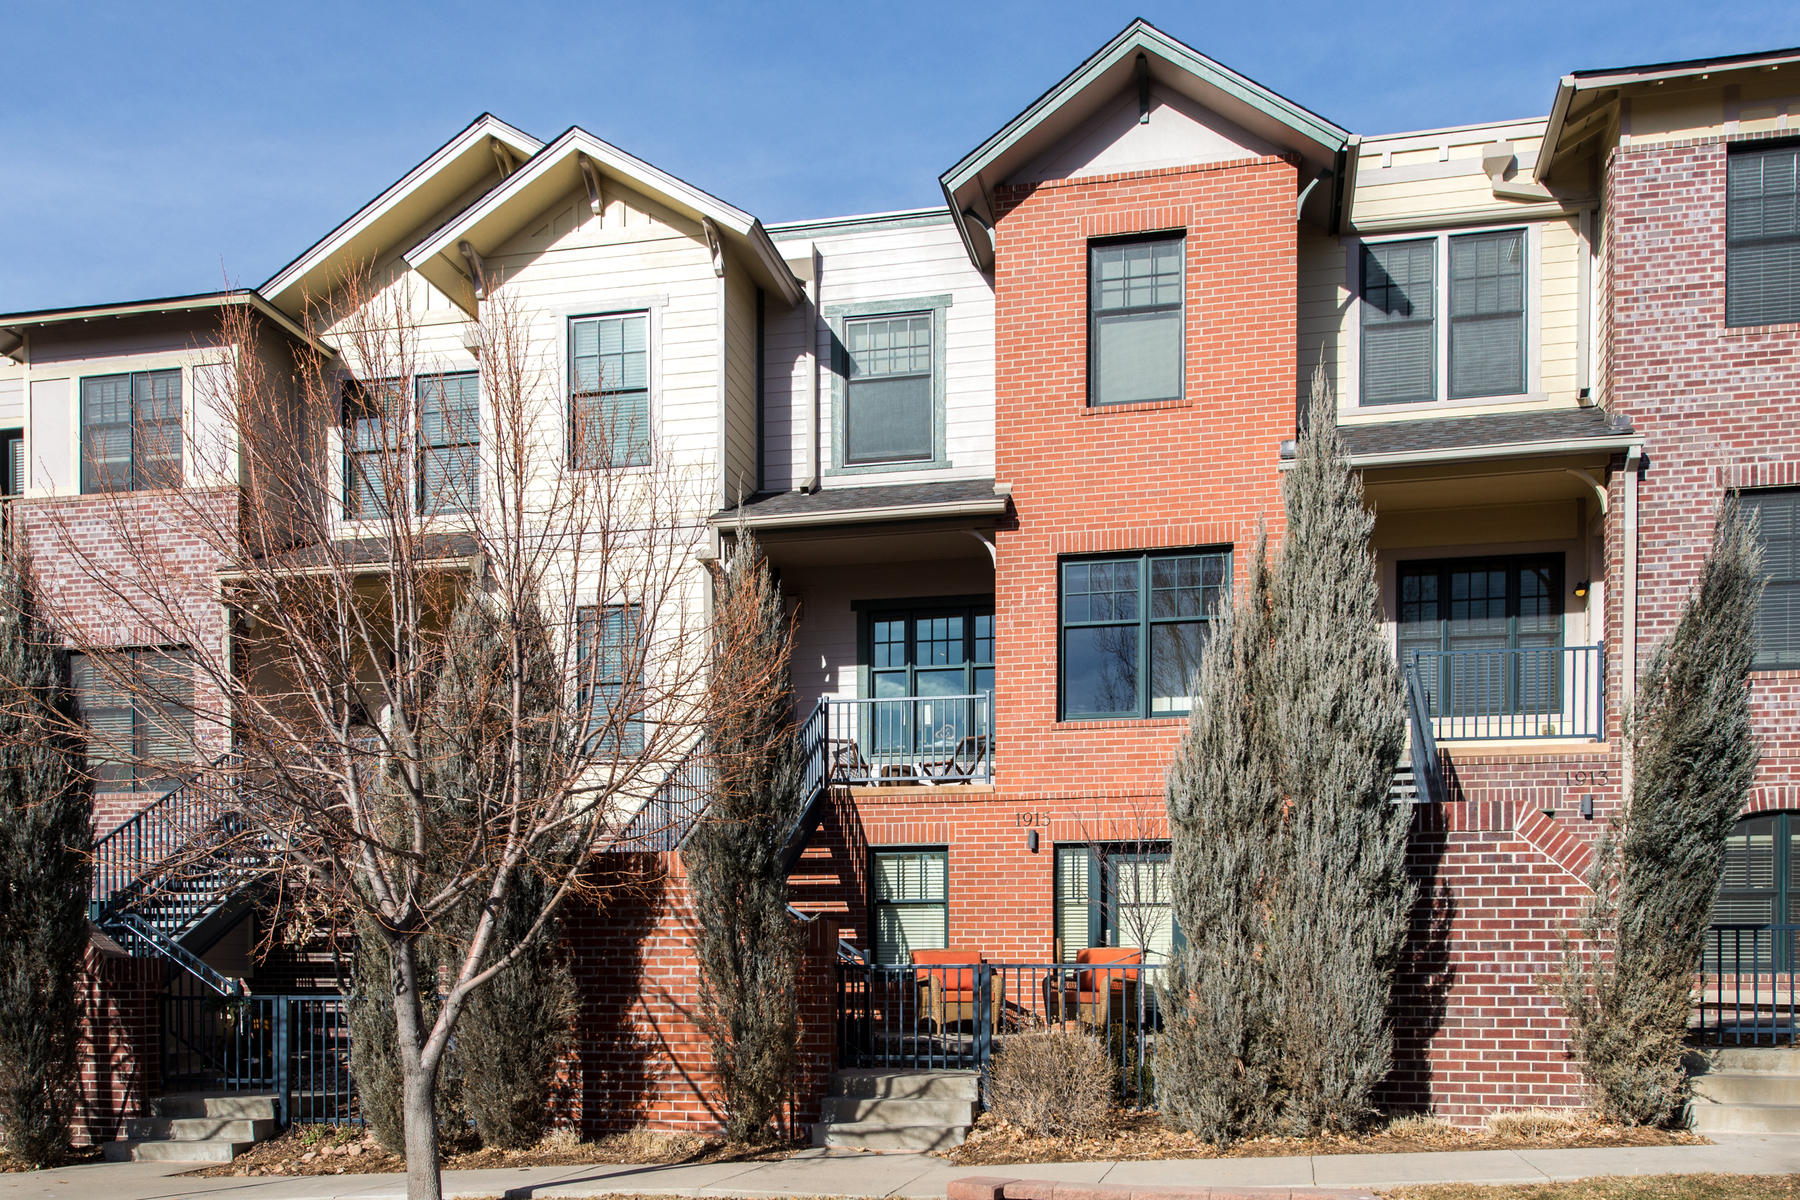 Townhouse for Active at 1915 W. Lilley Ave. 1915 W. Lilley Ave. Littleton, Colorado 80120 United States